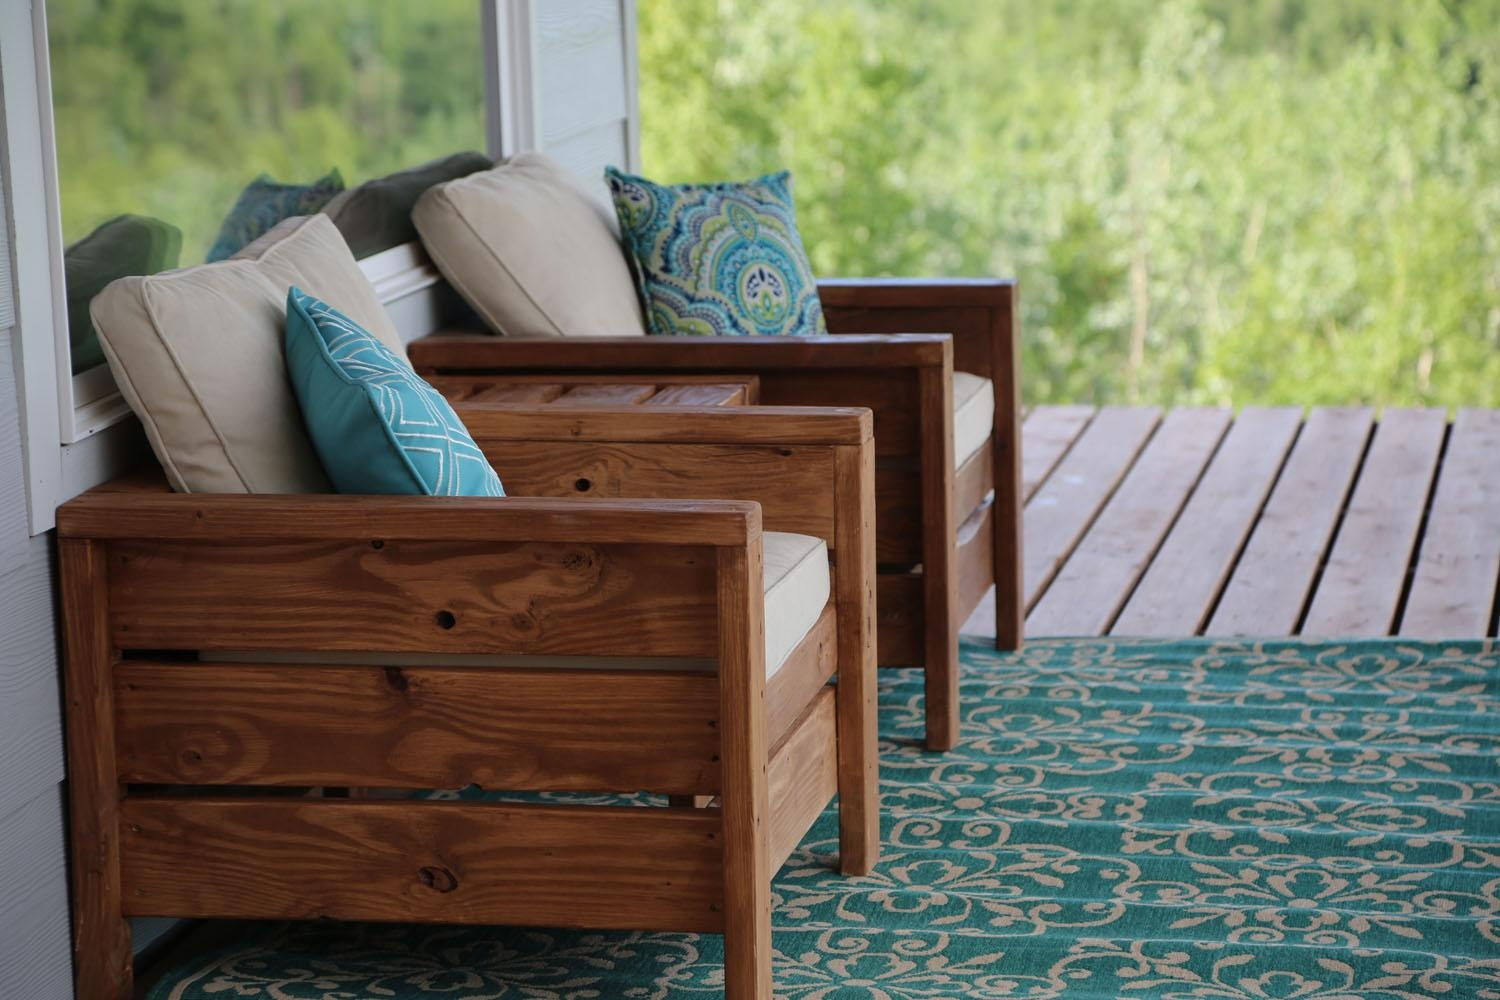 Ana White | Woodworking Projects Regarding Ana White Outdoor Sofas (Image 19 of 20)